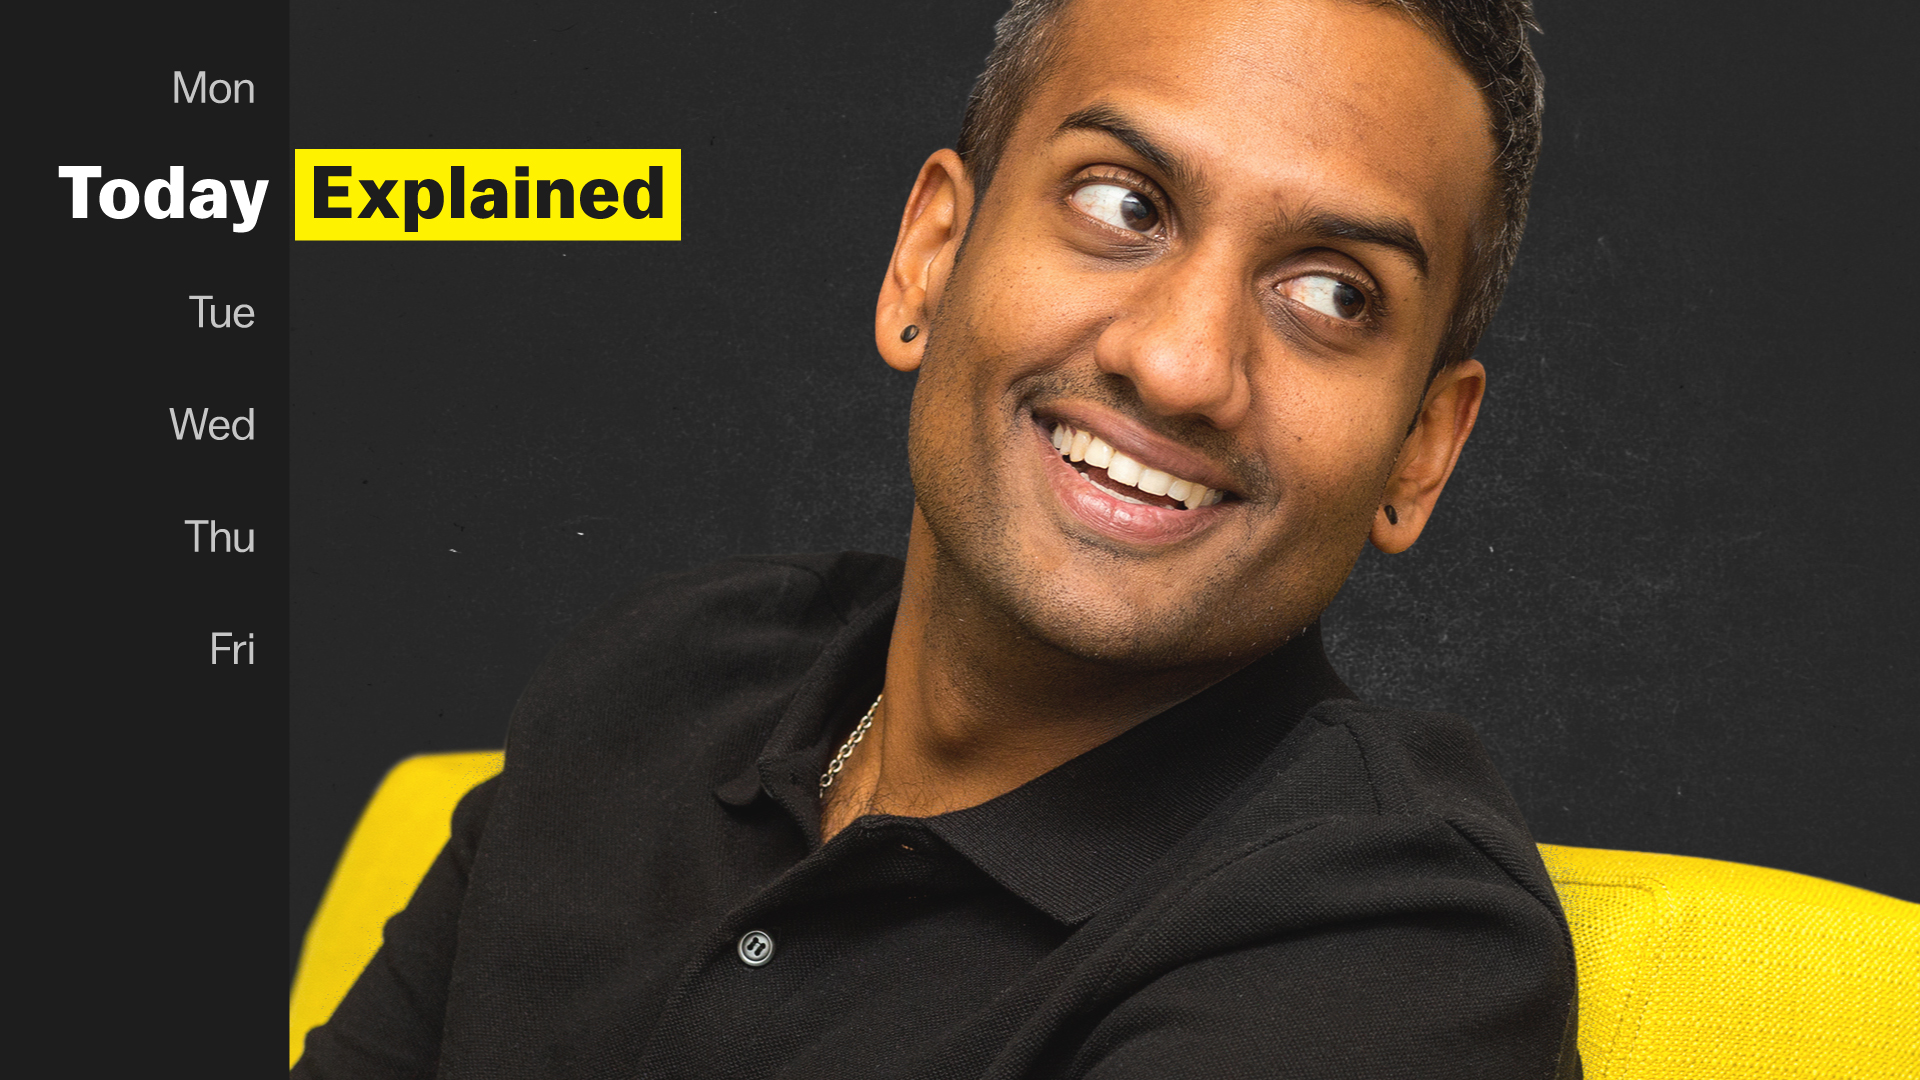 Today, Explained host Sean Rameswaram